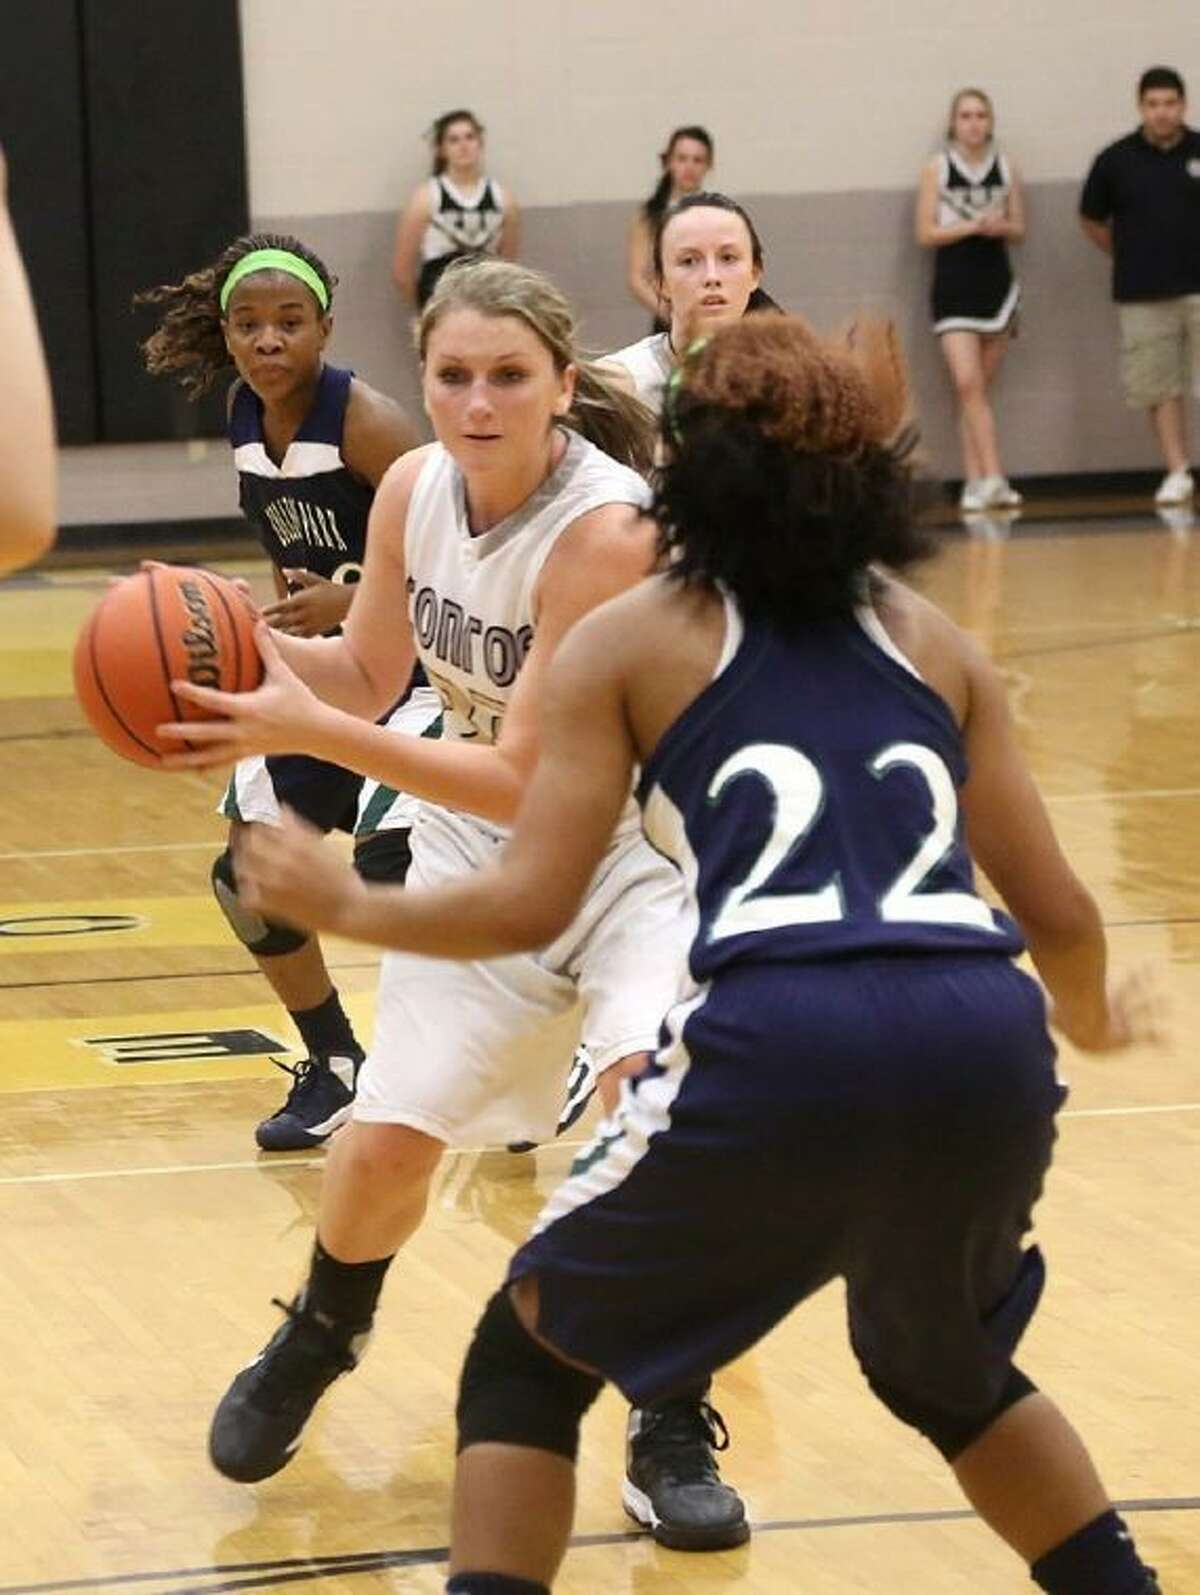 Courtney Boatright (with ball) was Conroe's leading rebounder last season.